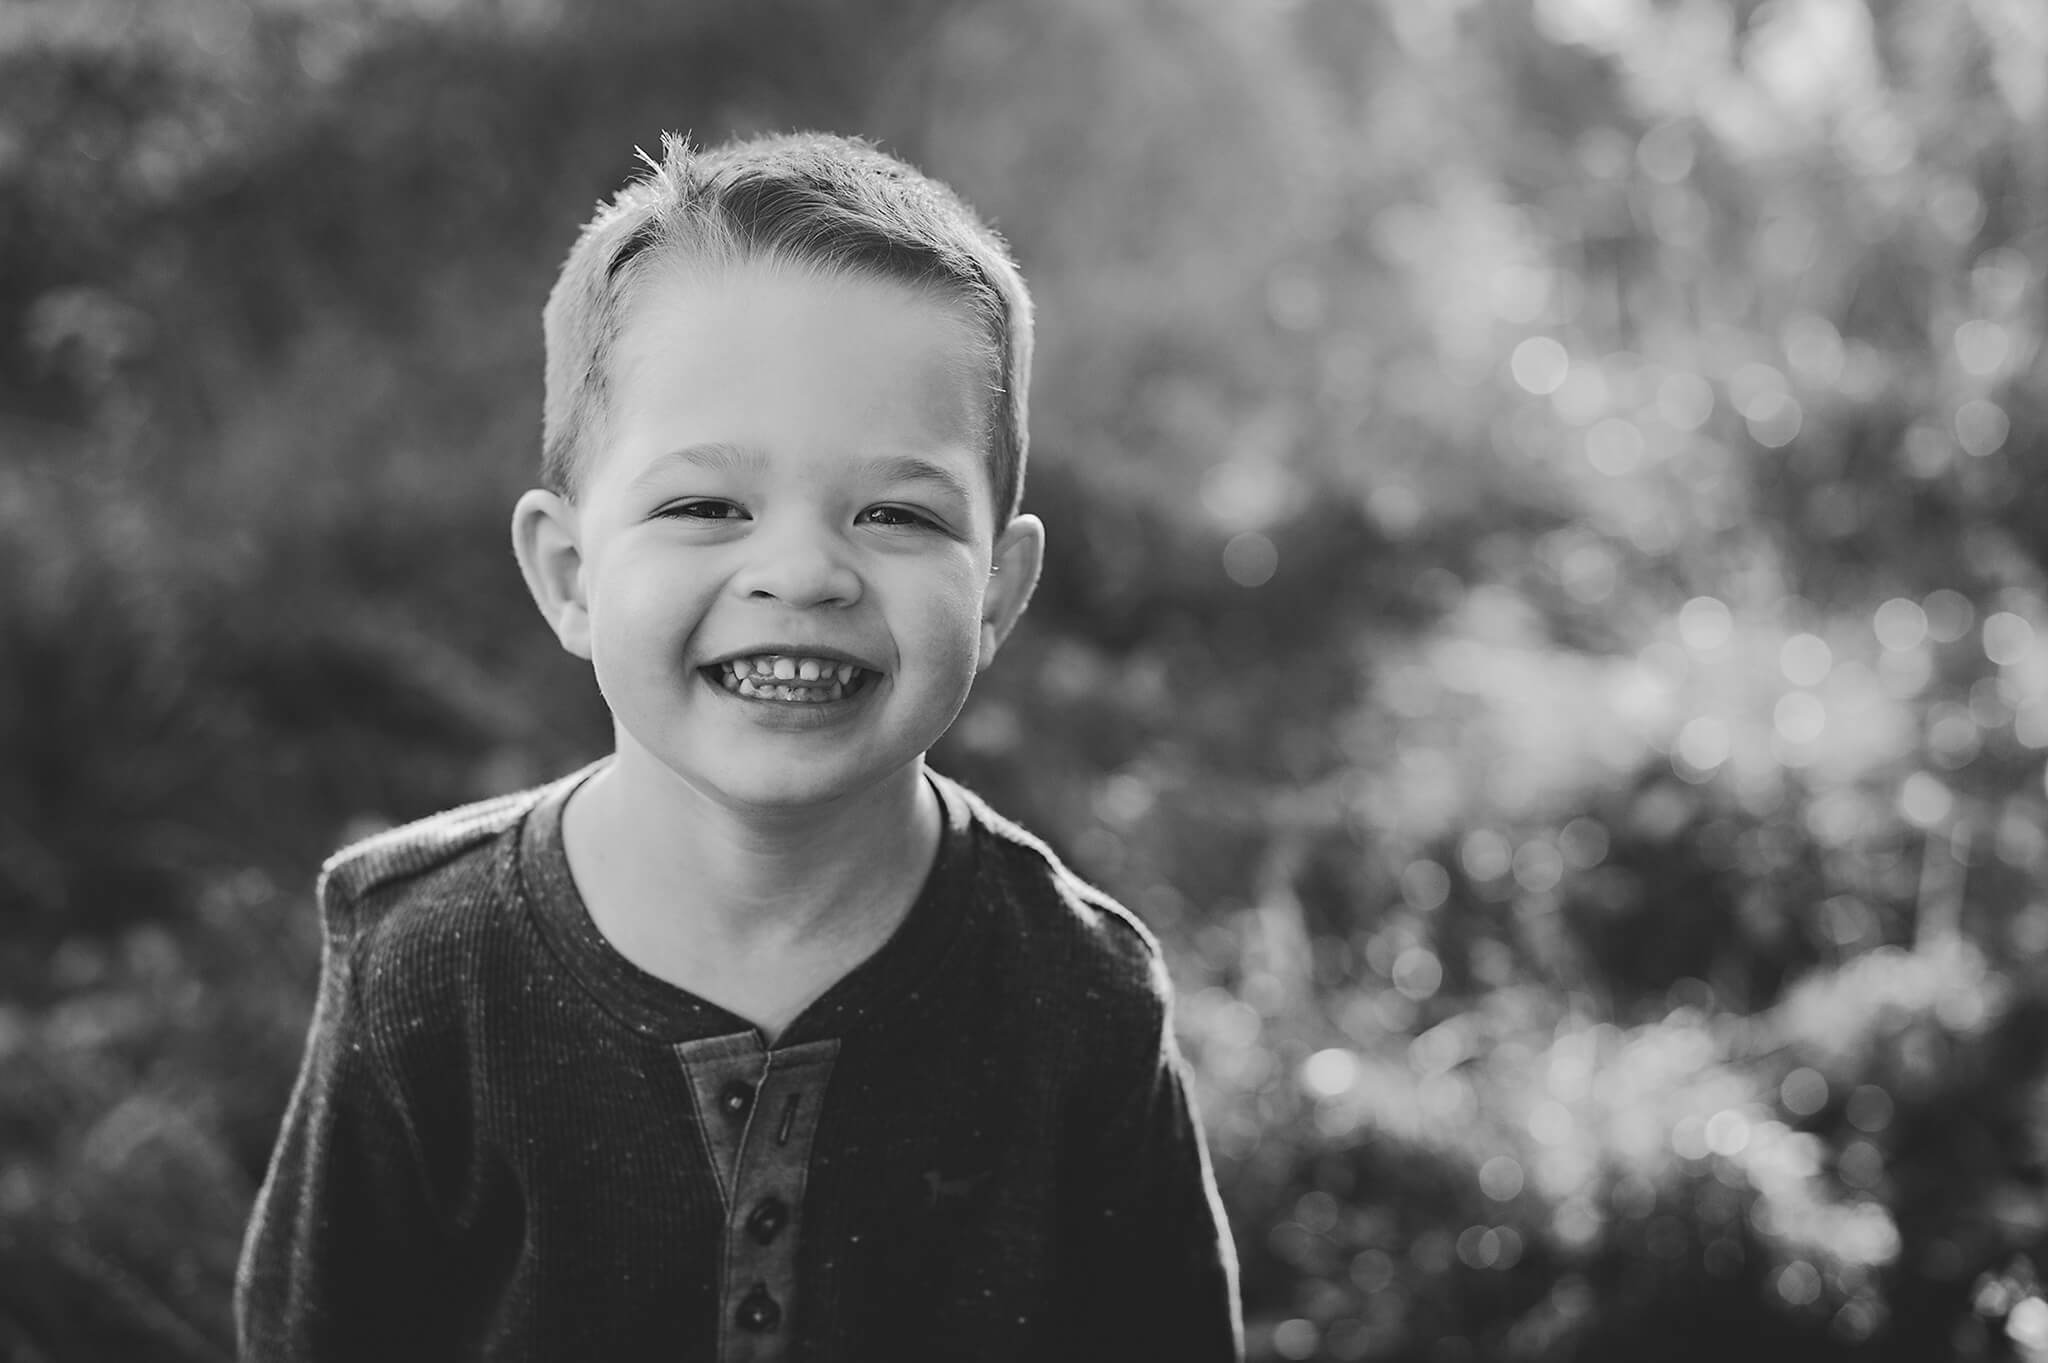 Little boy smiling in a black and white image for family portrait.